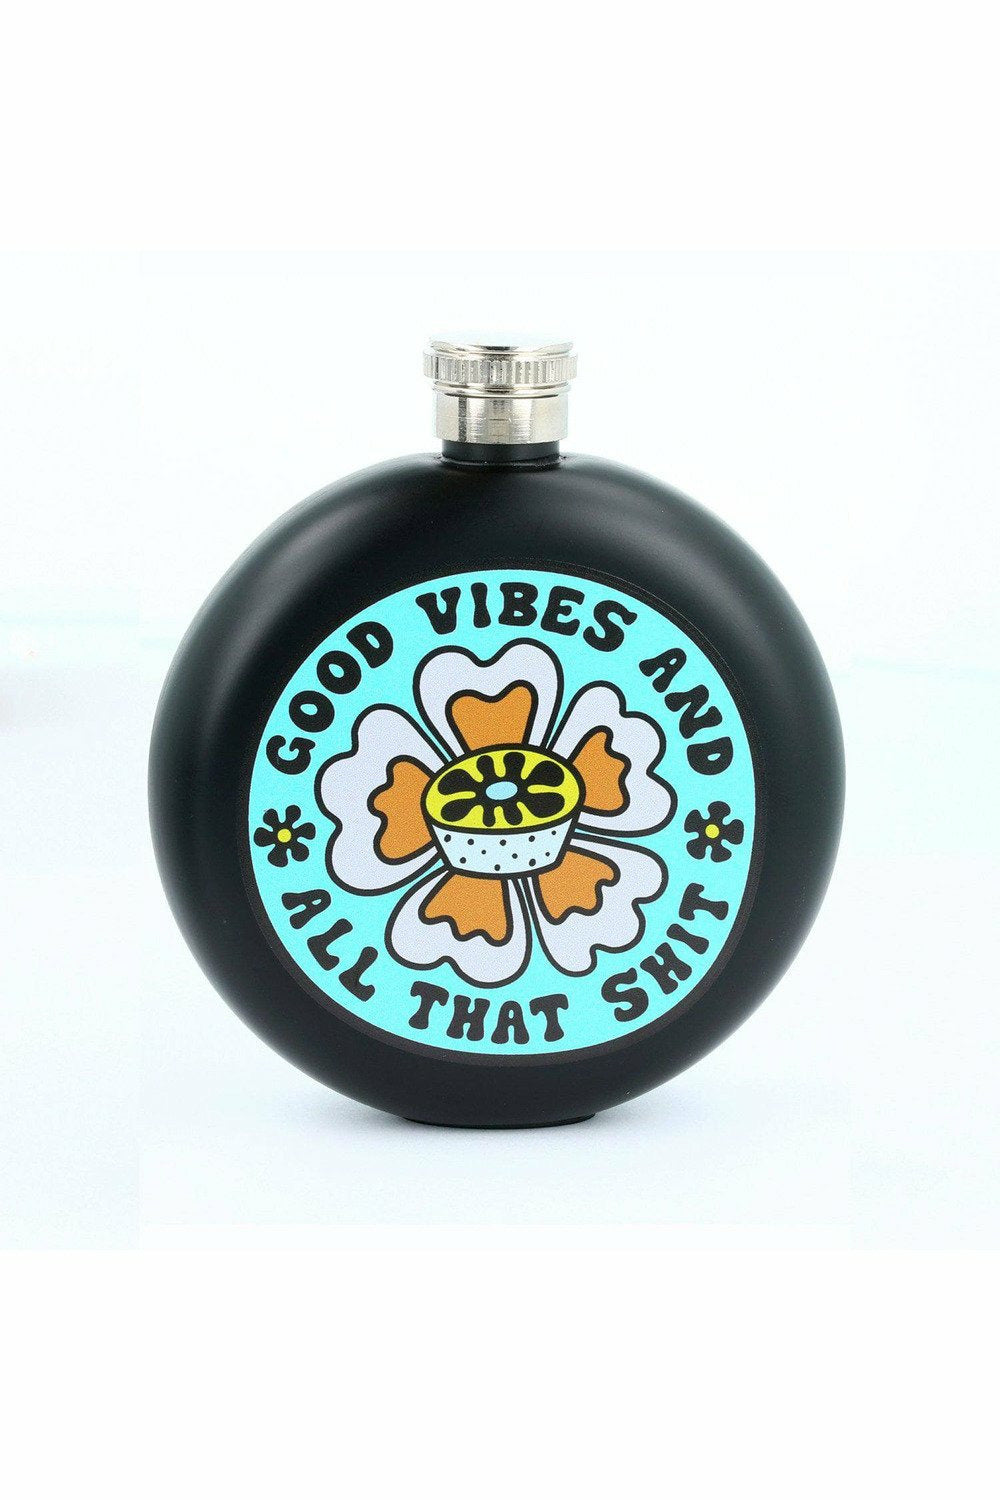 Good Vibes and Shit Hip Flask